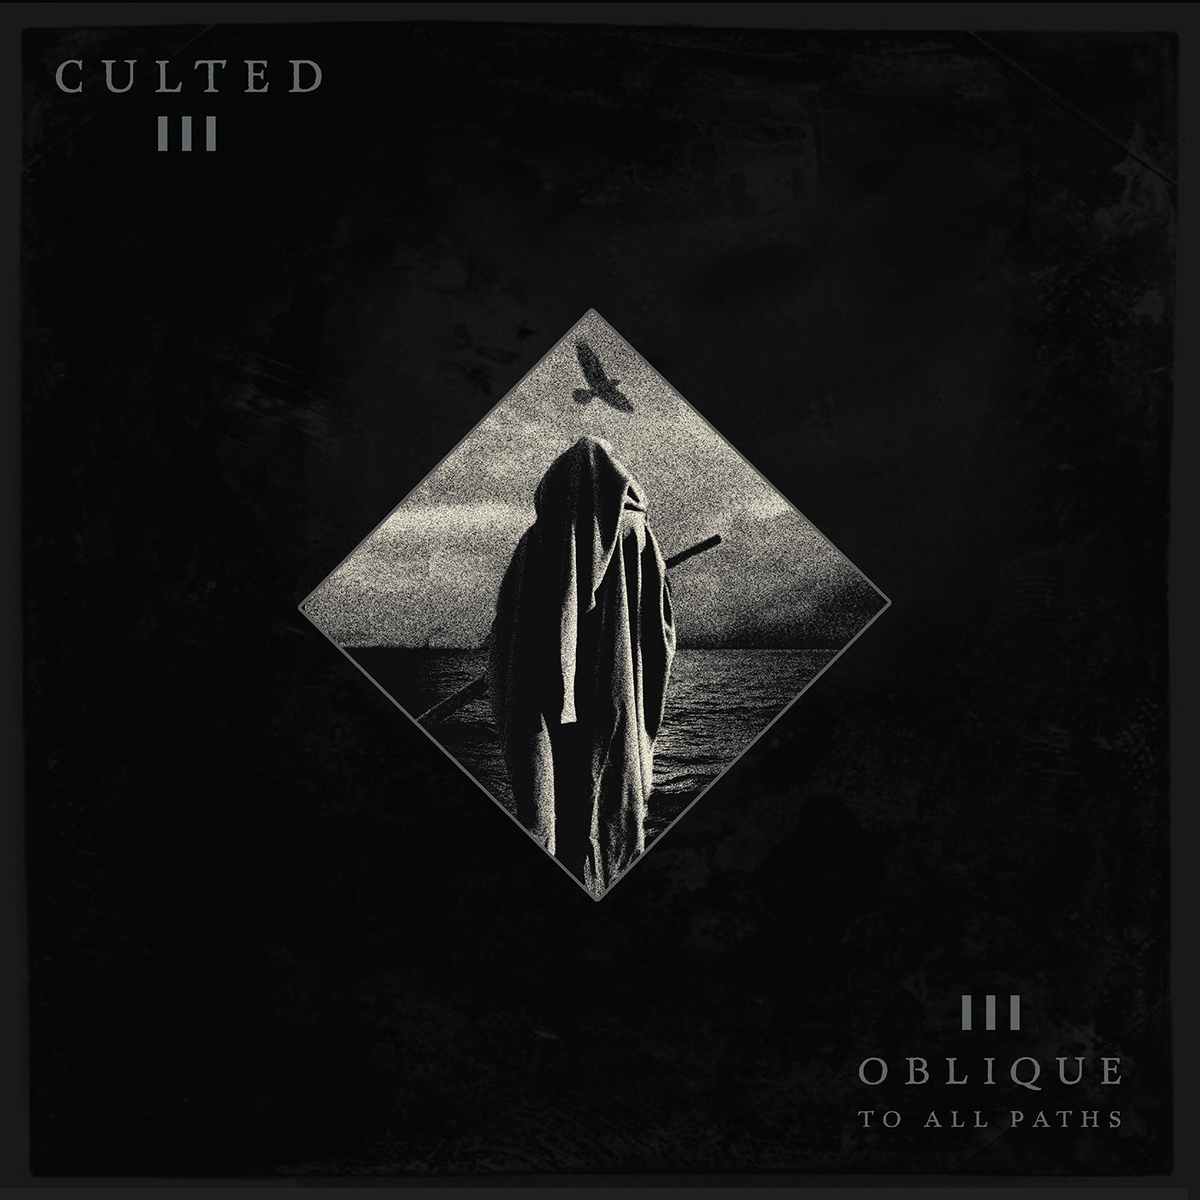 Culted Oblique To All Paths art.jpg